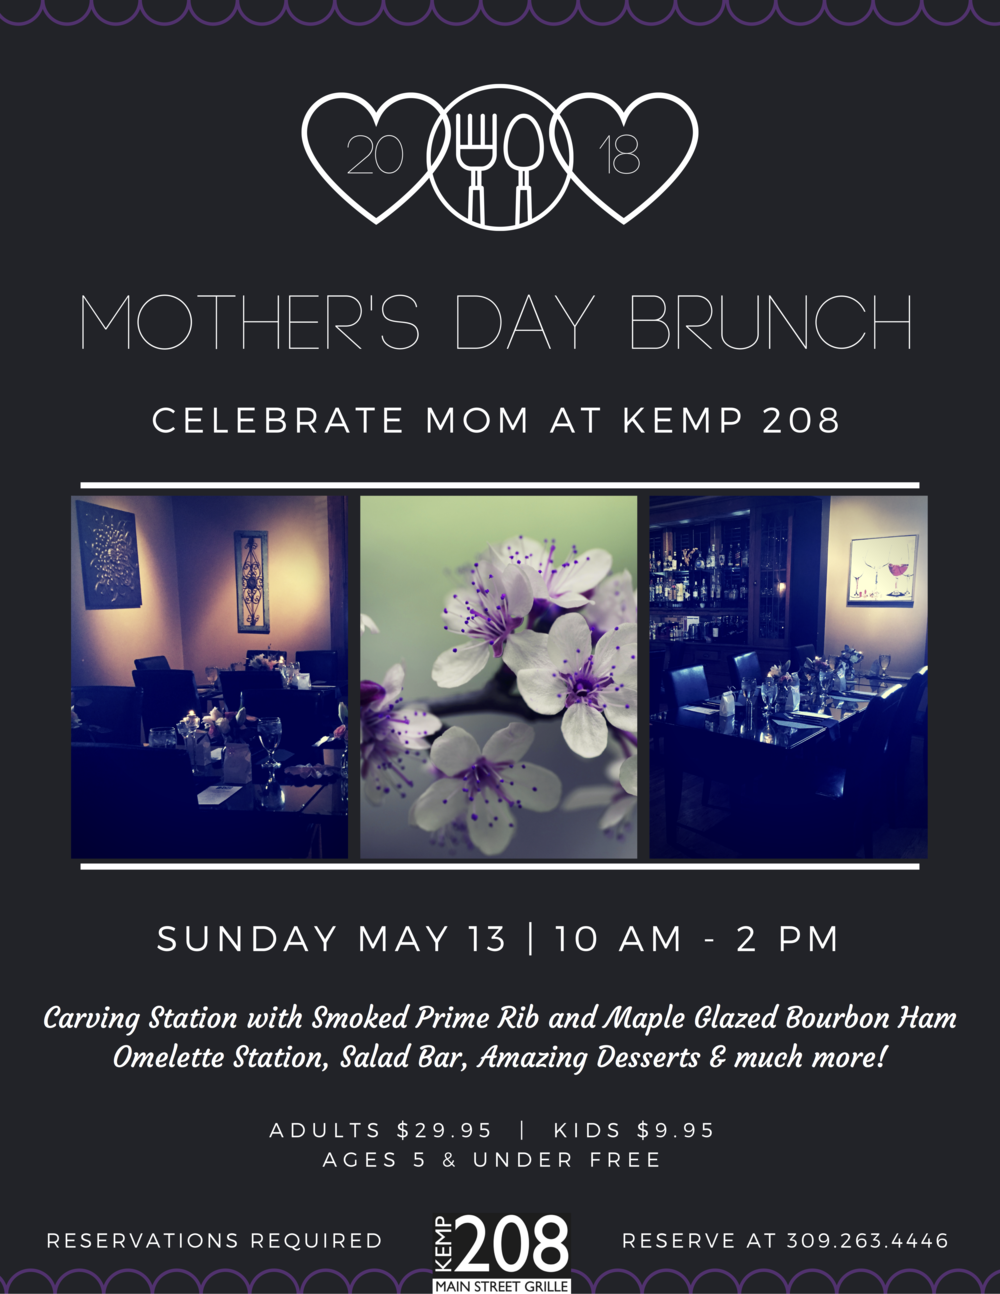 mothers day brunch kemp 208 (2).png